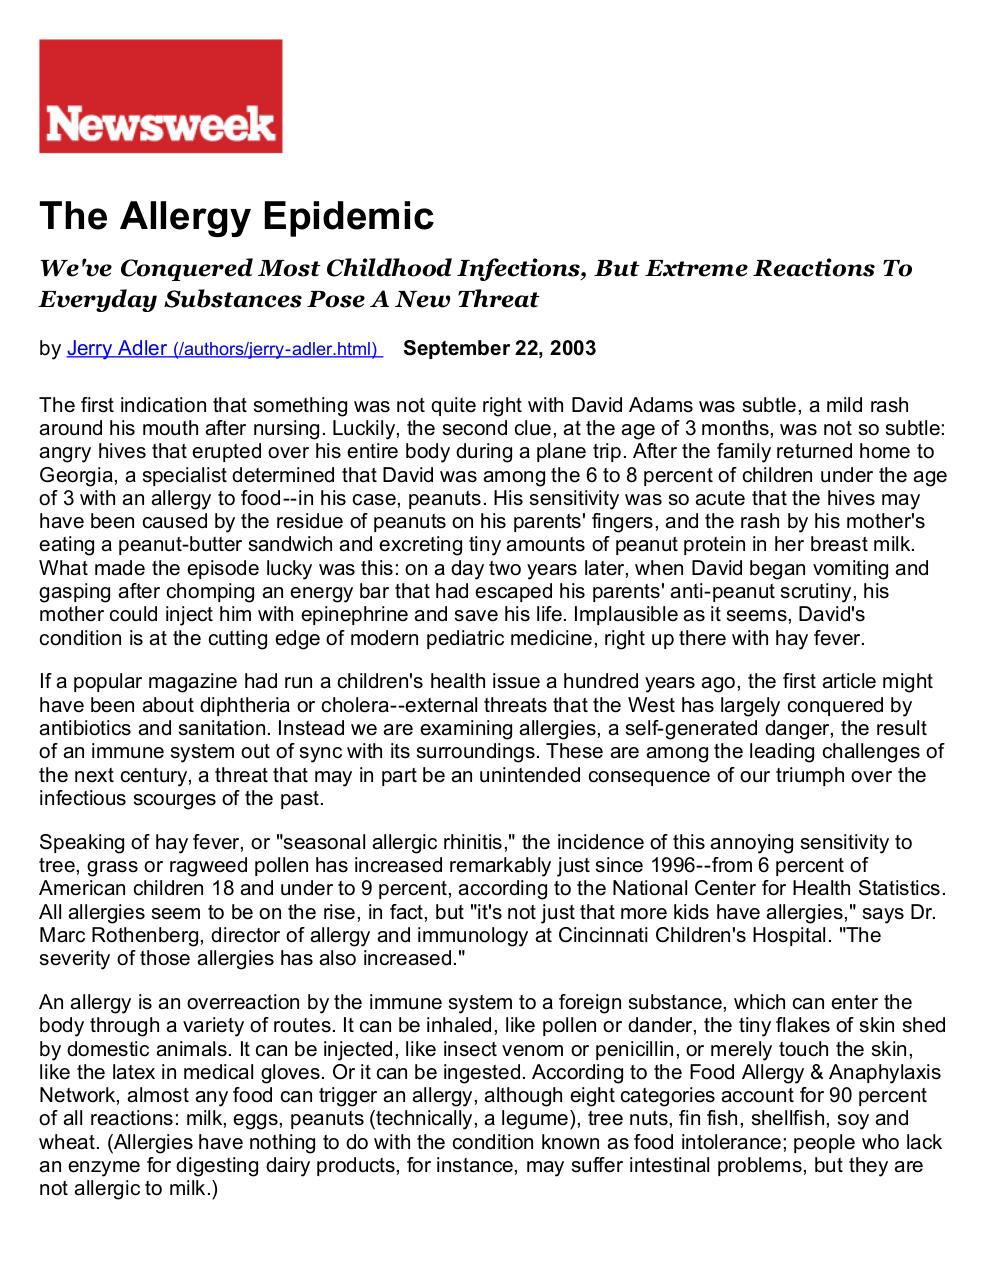 Aperçu du fichier PDF the-allergy-epidemic-print-newsweek.pdf